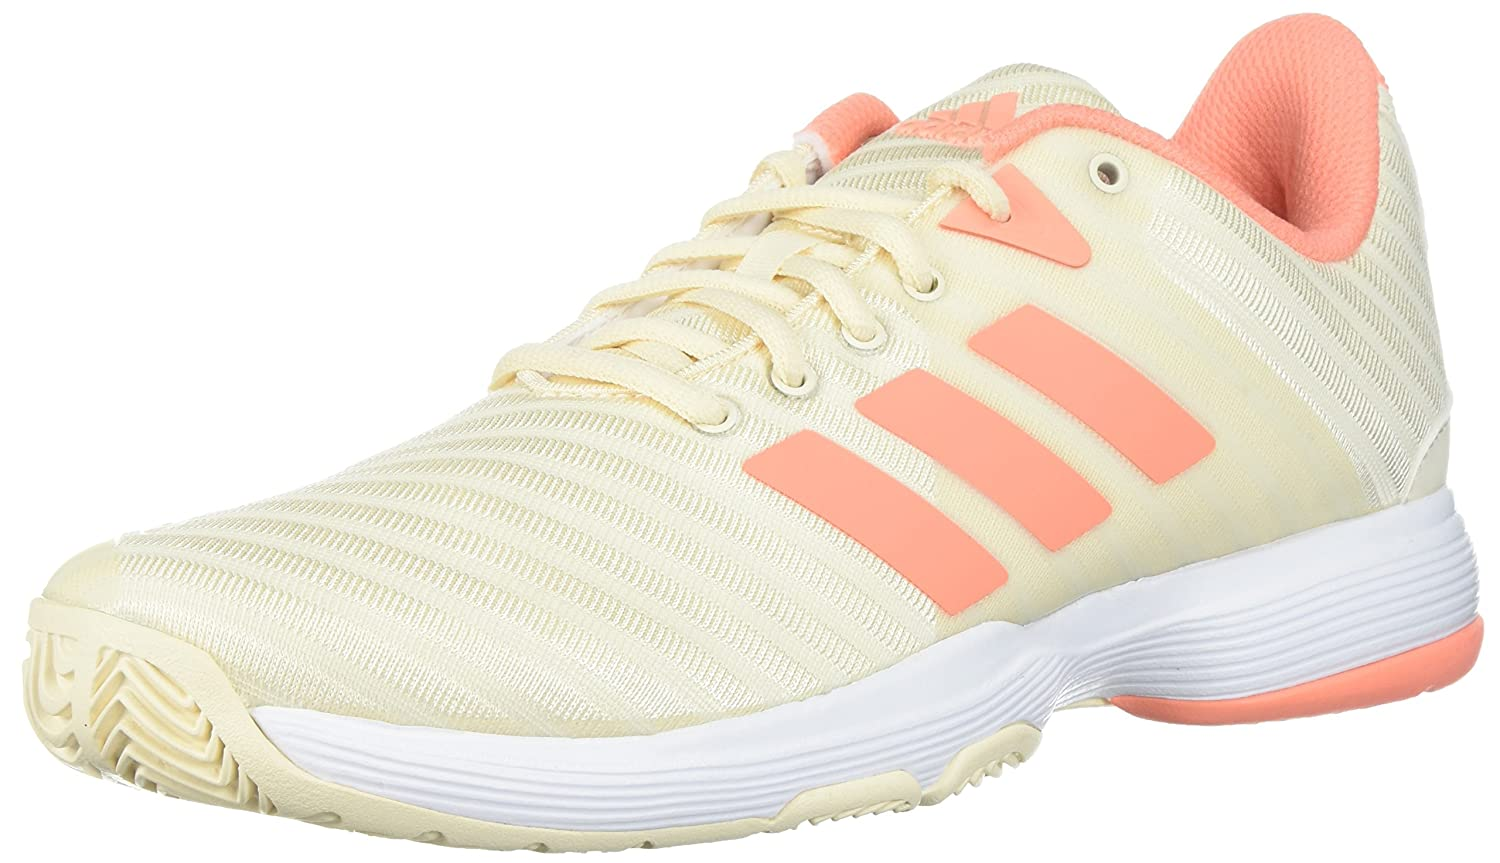 adidas Women's Barricade Court w Tennis Shoe, White/Matte Silver/Grey Two, 6.5 M US B072FH464S 6.5 B(M) US|Ecru Tint/Chalk Coral/White